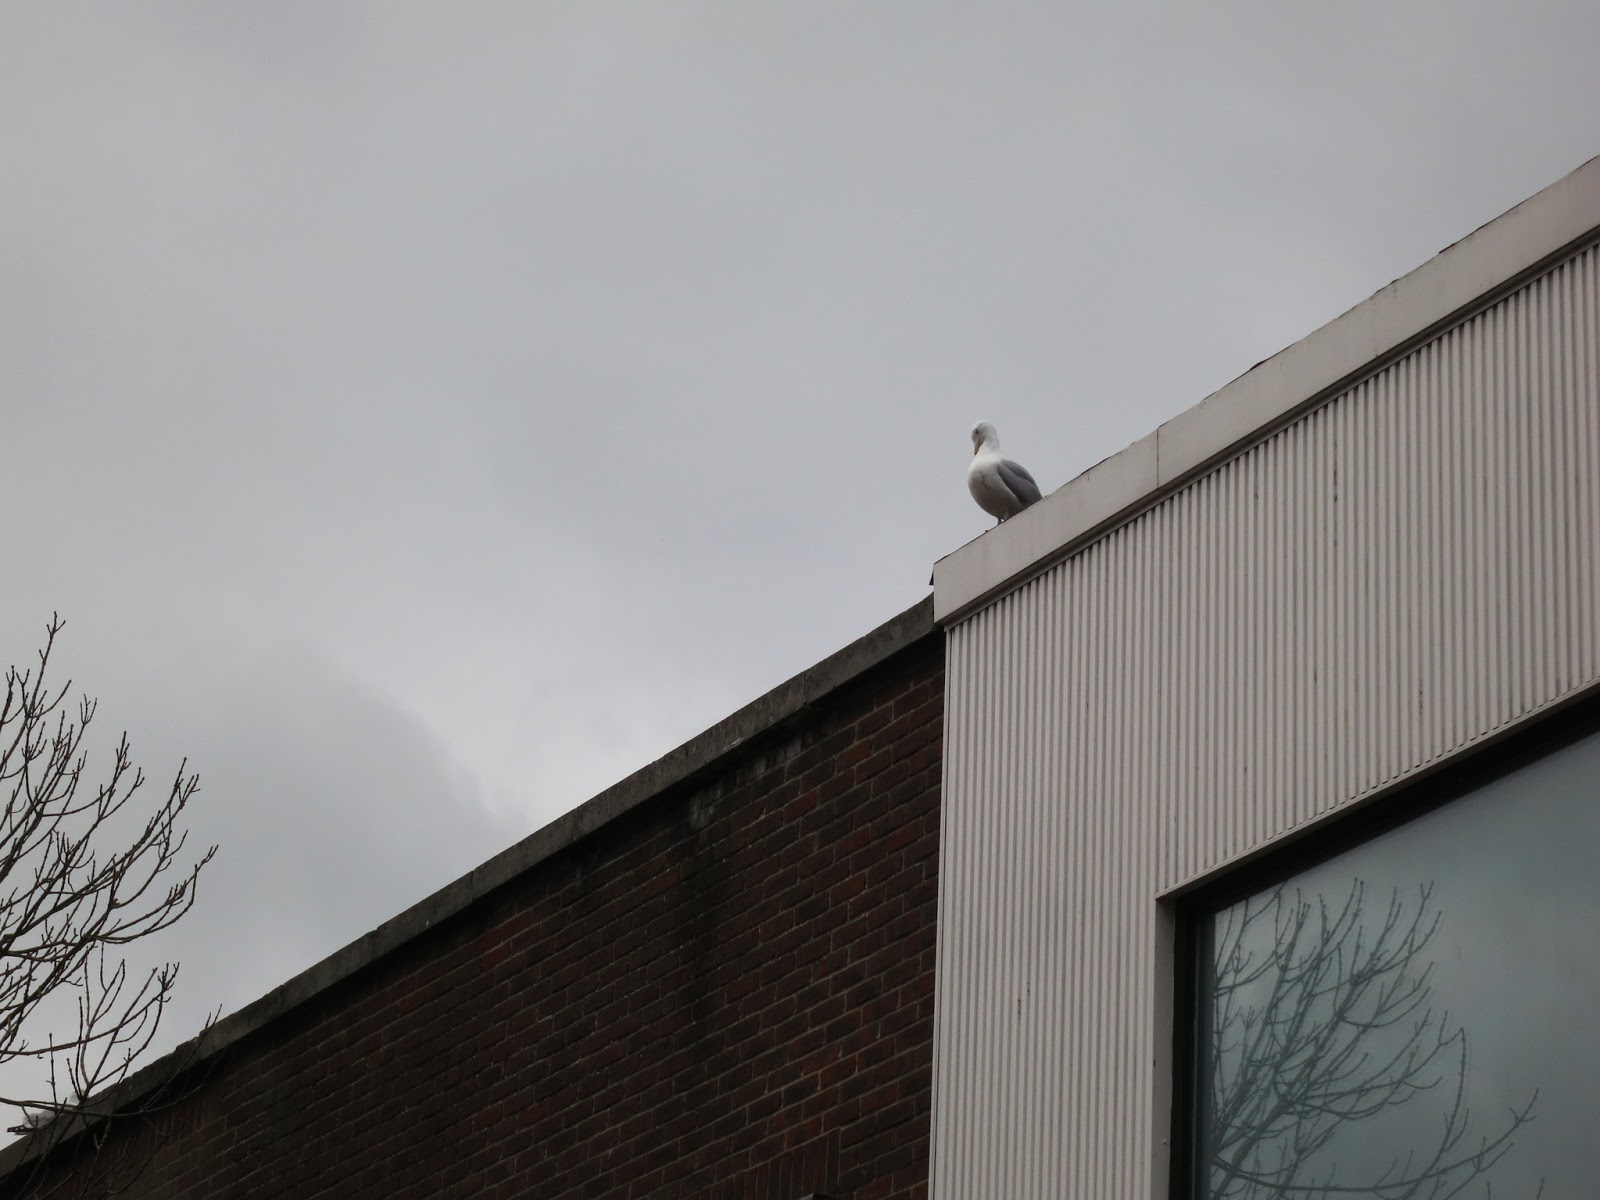 Gull on roof of boring building with tree reflected in window.